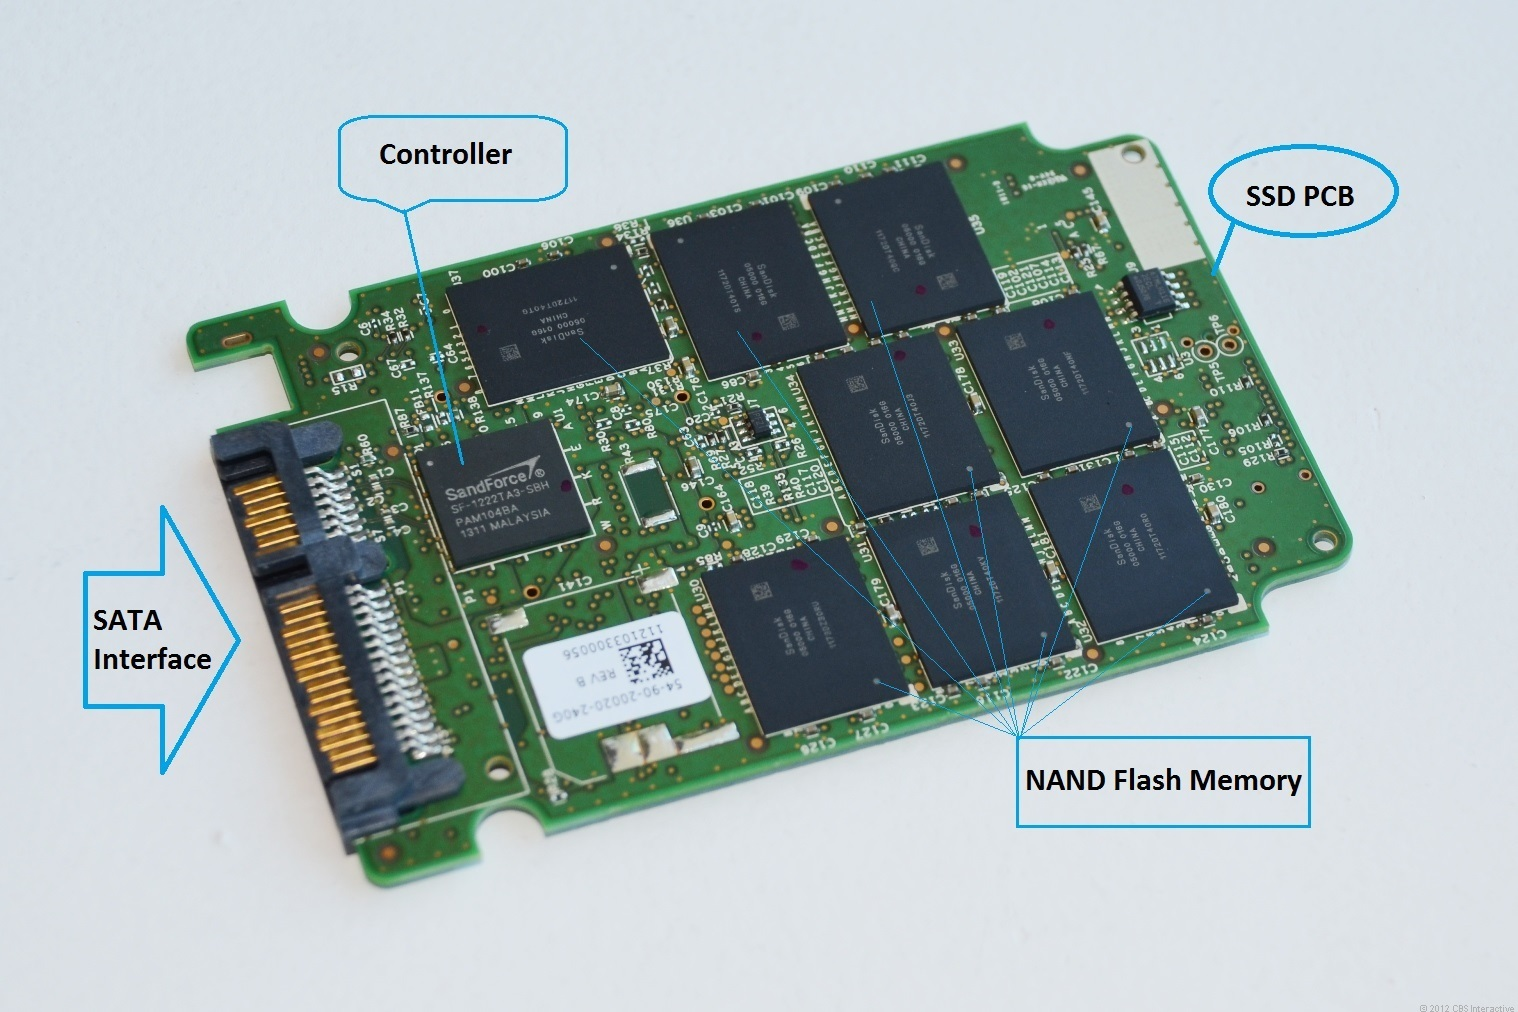 Inside a standard SDD, the only component shared with a hard drive is the SATA interface.